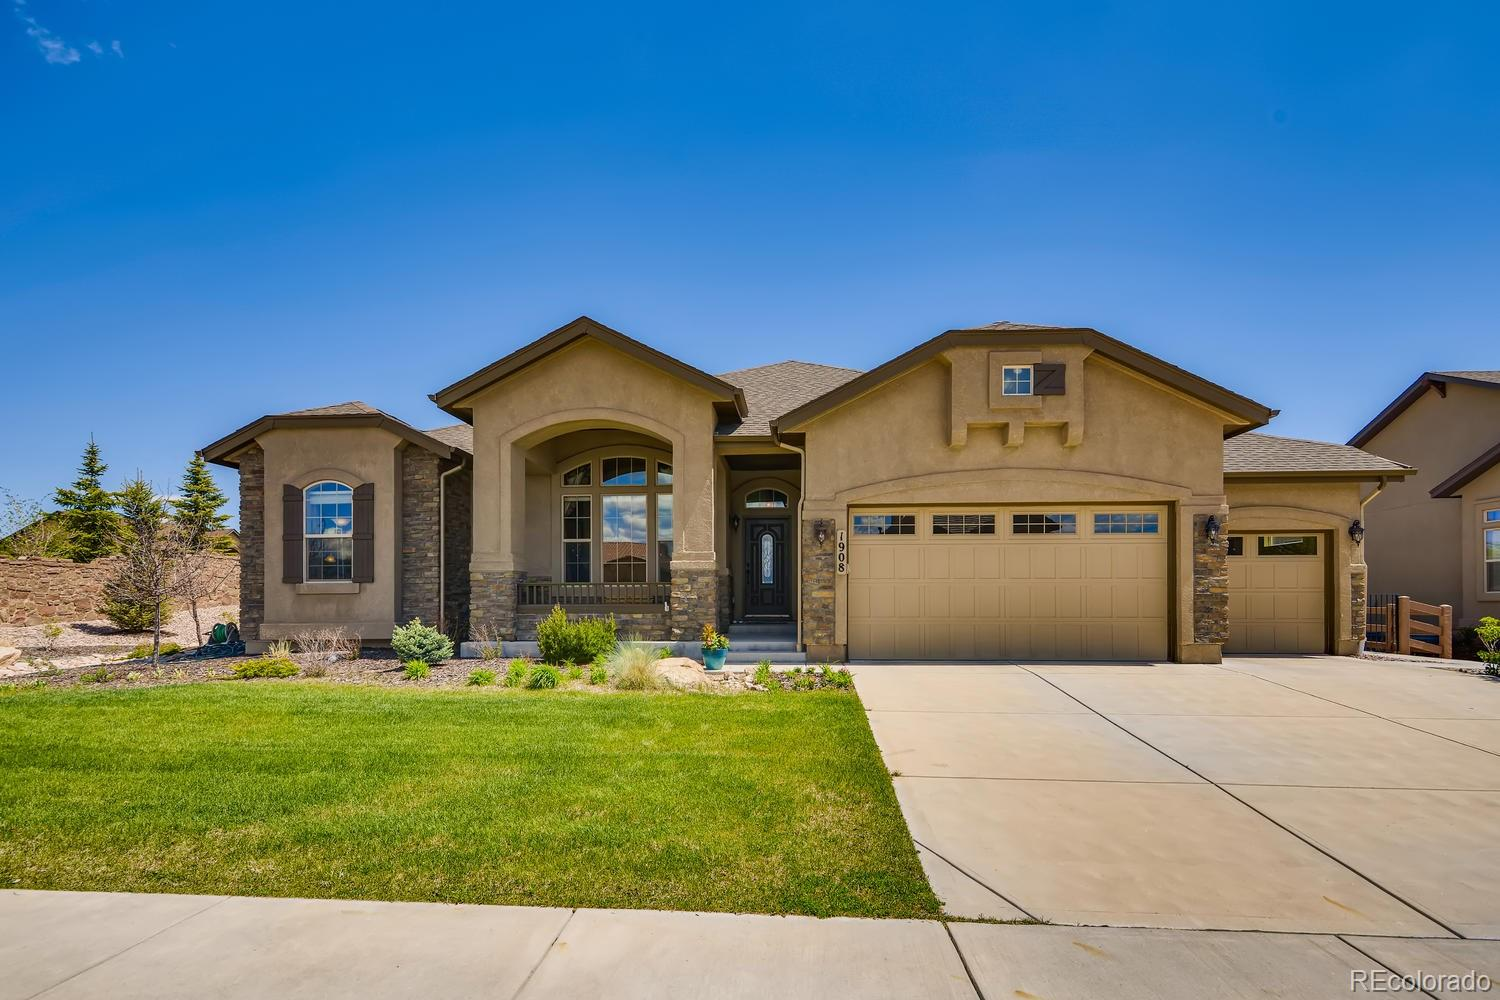 MLS# 5599006 - 1 - 1908 Turnbull Drive, Colorado Springs, CO 80921